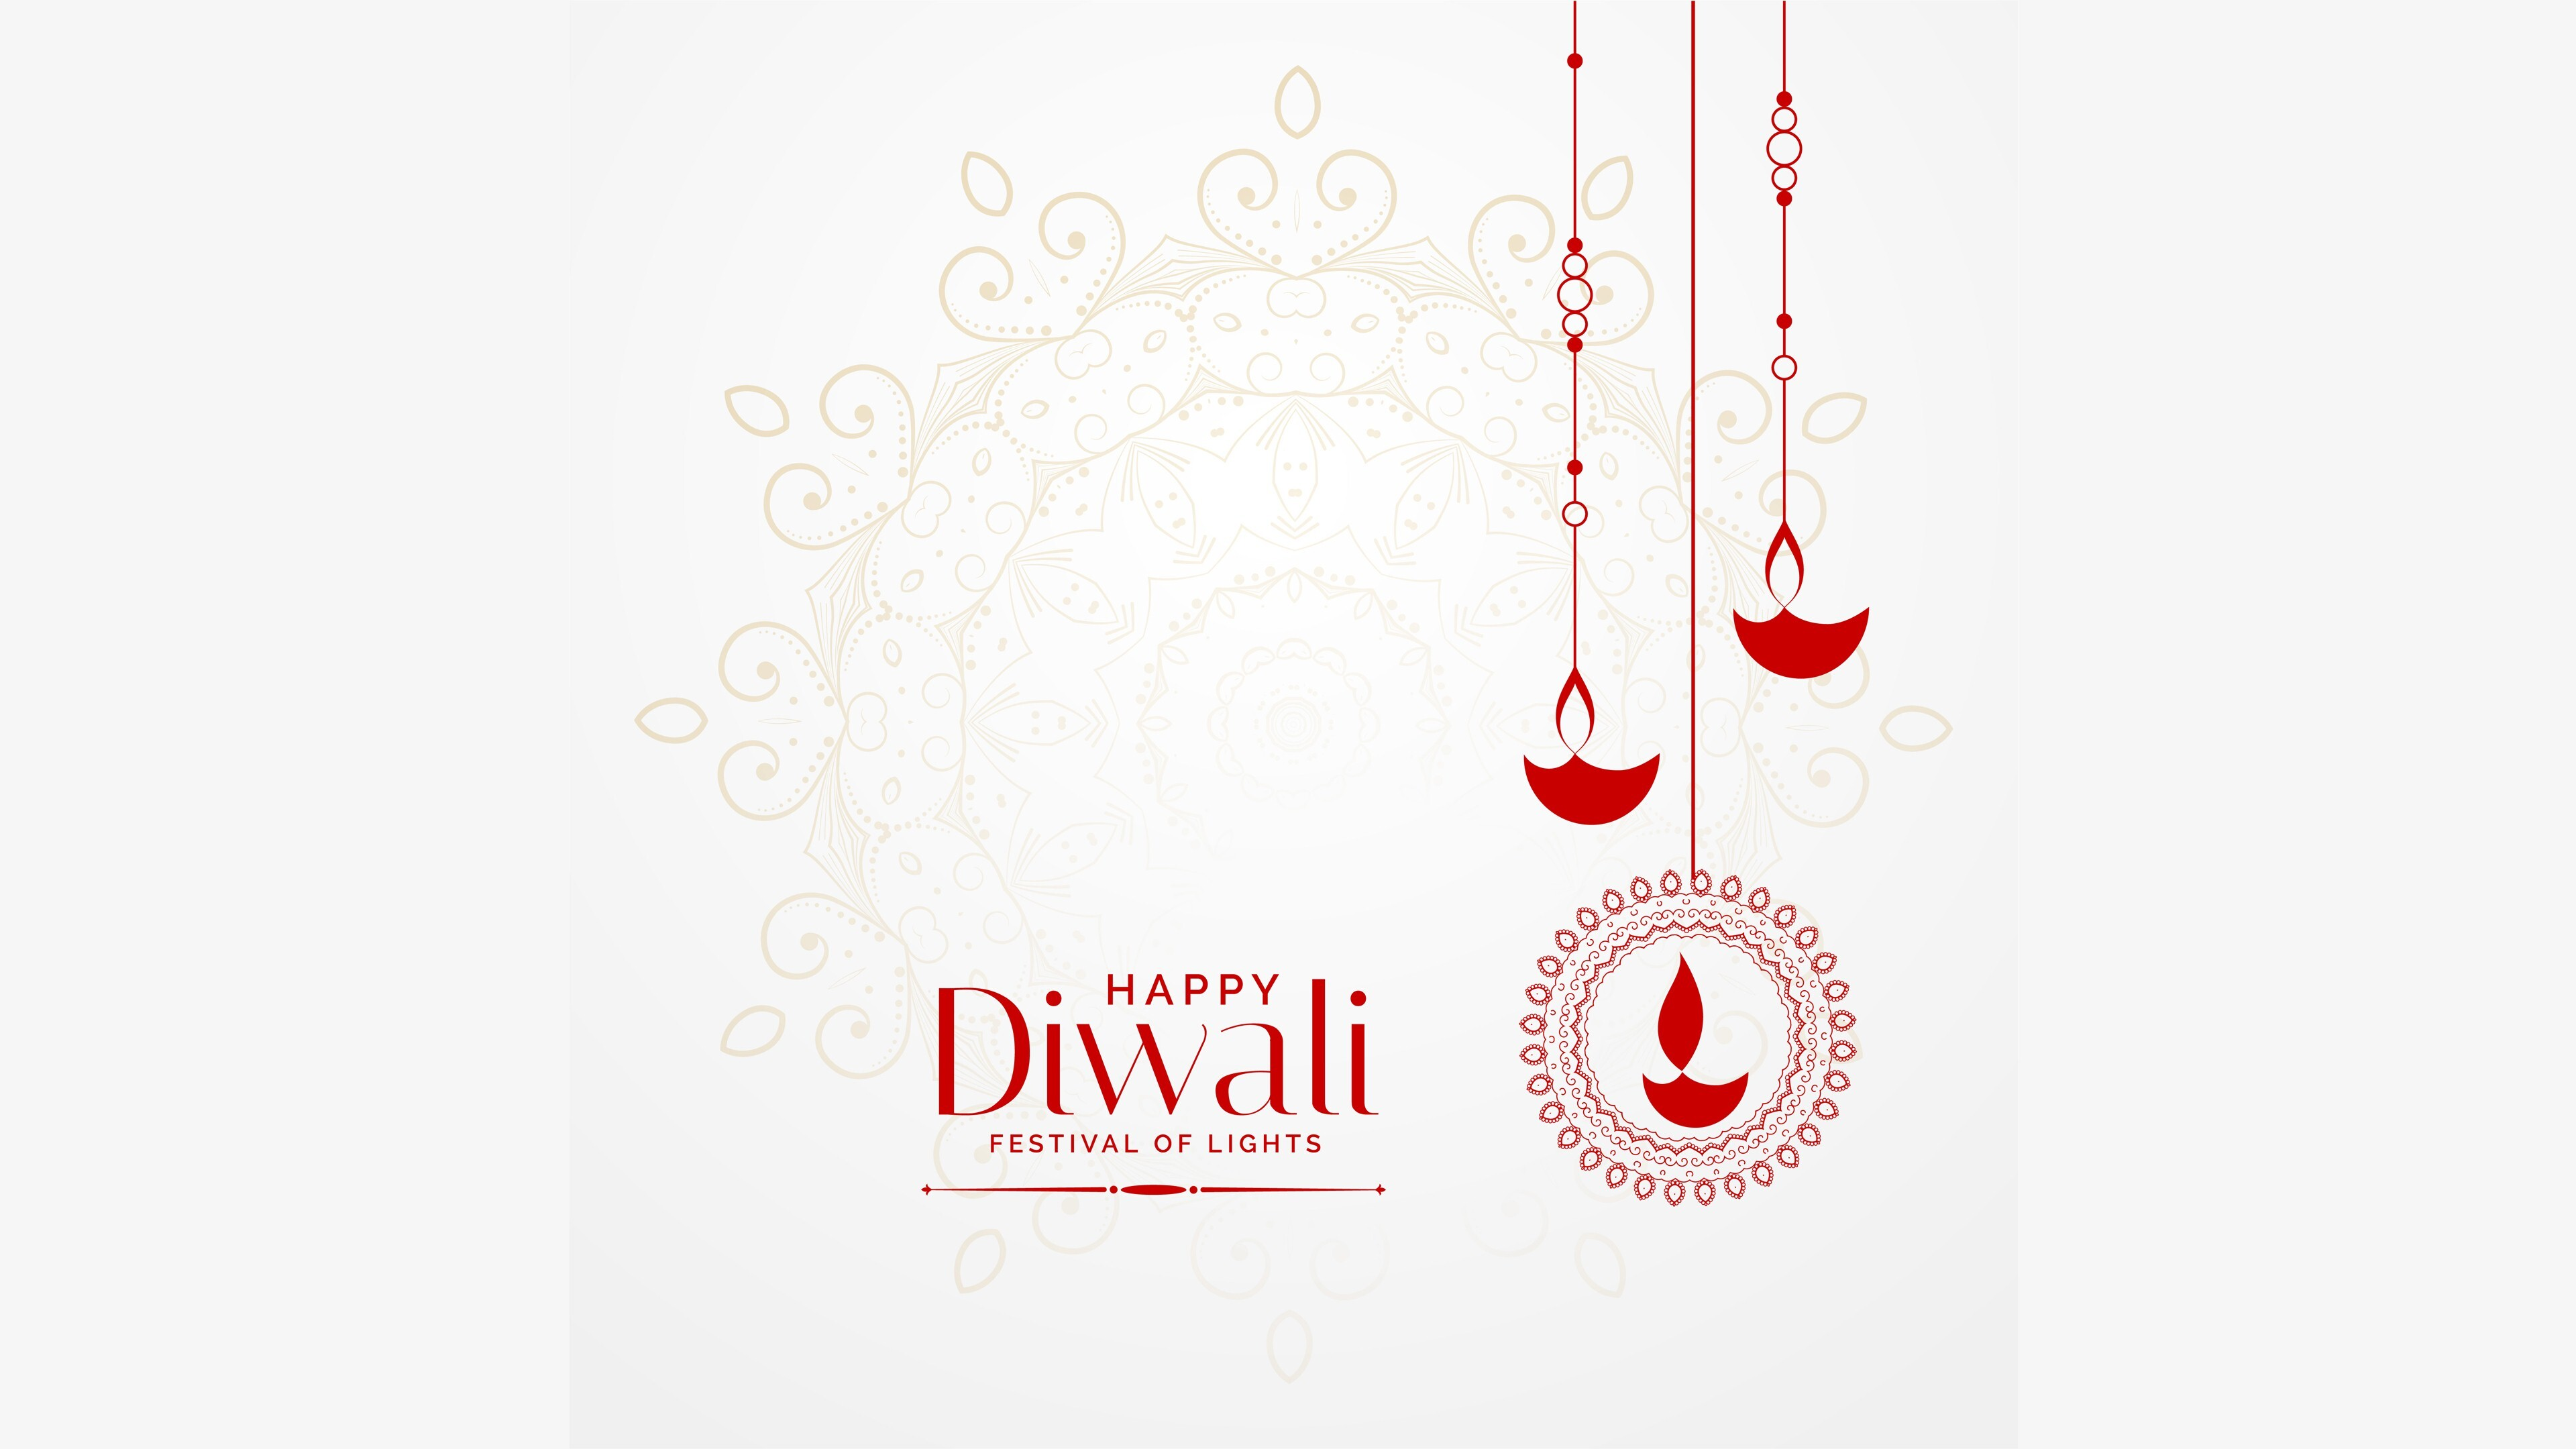 Happy Diwali Background 4k Images Hd Wallpapers